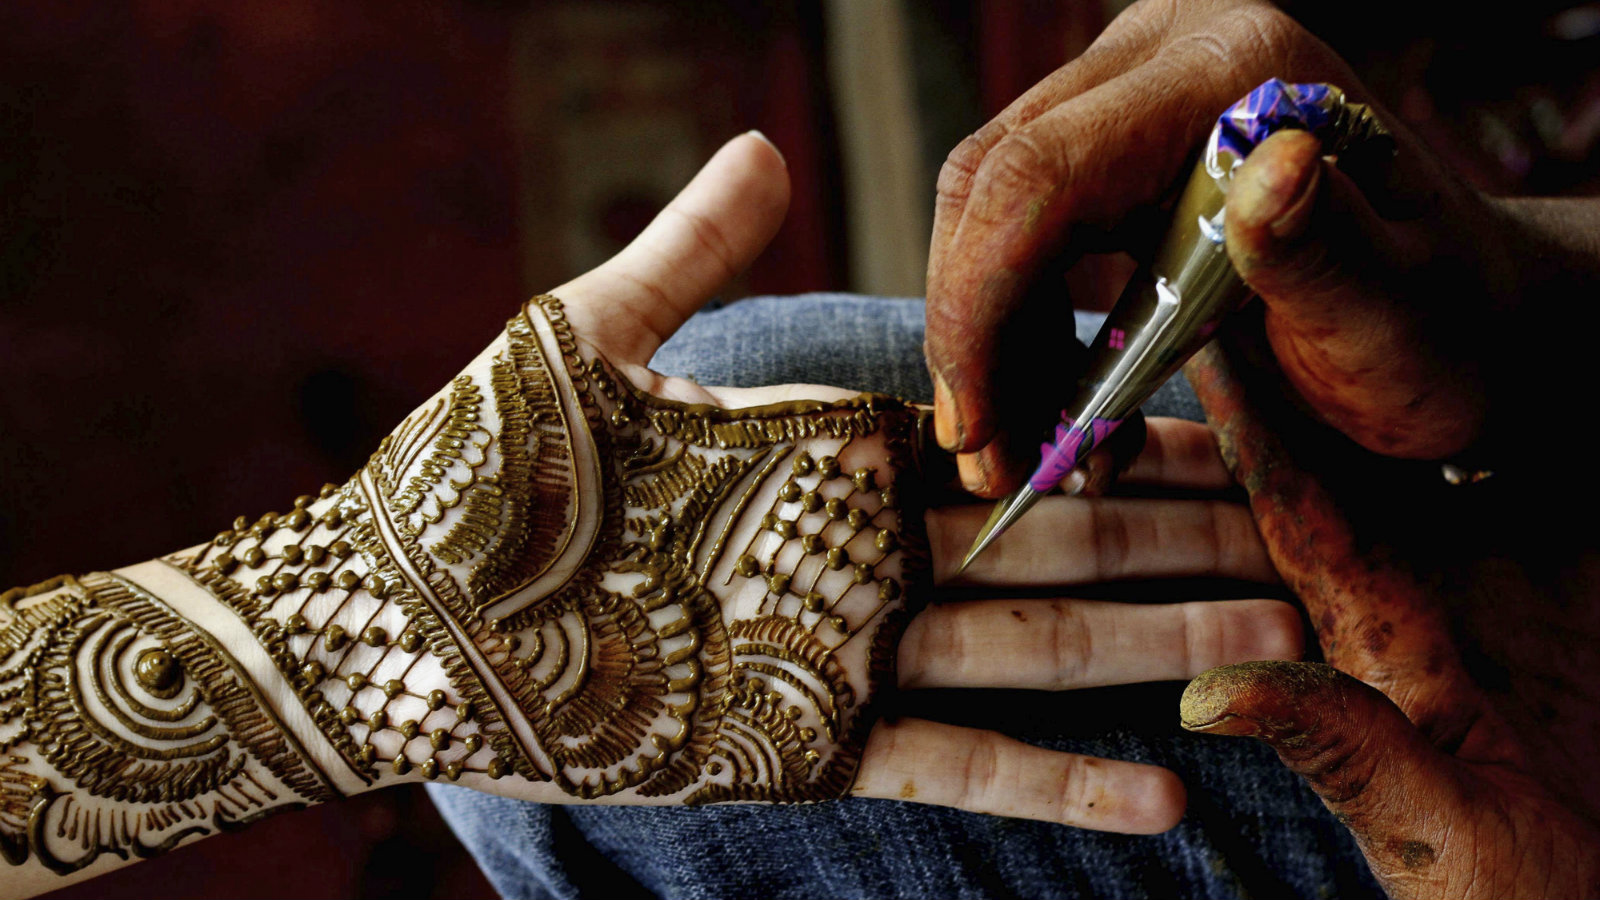 An Indian woman get henna designs applied on her palm during the Hindu festival of Karva Chauth in the eastern Indian city Bhubaneswar, India, Friday, Oct. 30, 2015. Hindu married women decorate their hands with henna, wear colorful bangles and observe a fast to pray for the longevity and well being of their husbands during this festival.